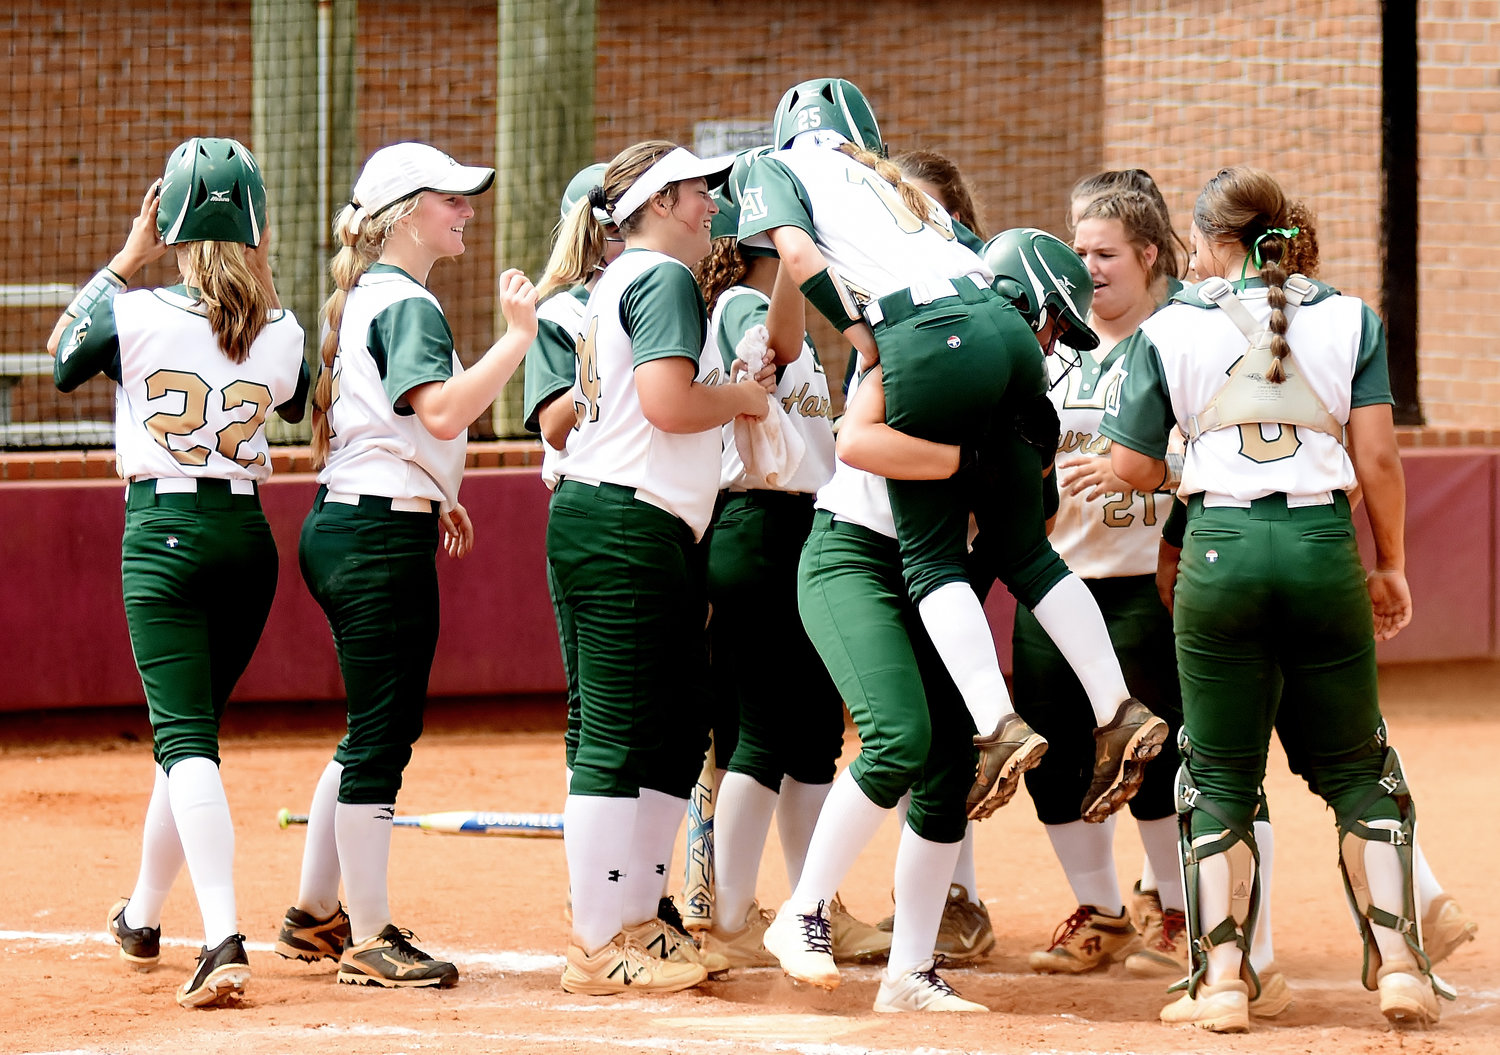 The Adairsville softball team celebrates Breeana Wilson's home run in the Bartow County Championships by lifting her in the air in the tournament's third-place game on Sept. 1, 2018. Wilson and four other players graduated off last year's team, but the Tigers still return plenty of talent in 2019.